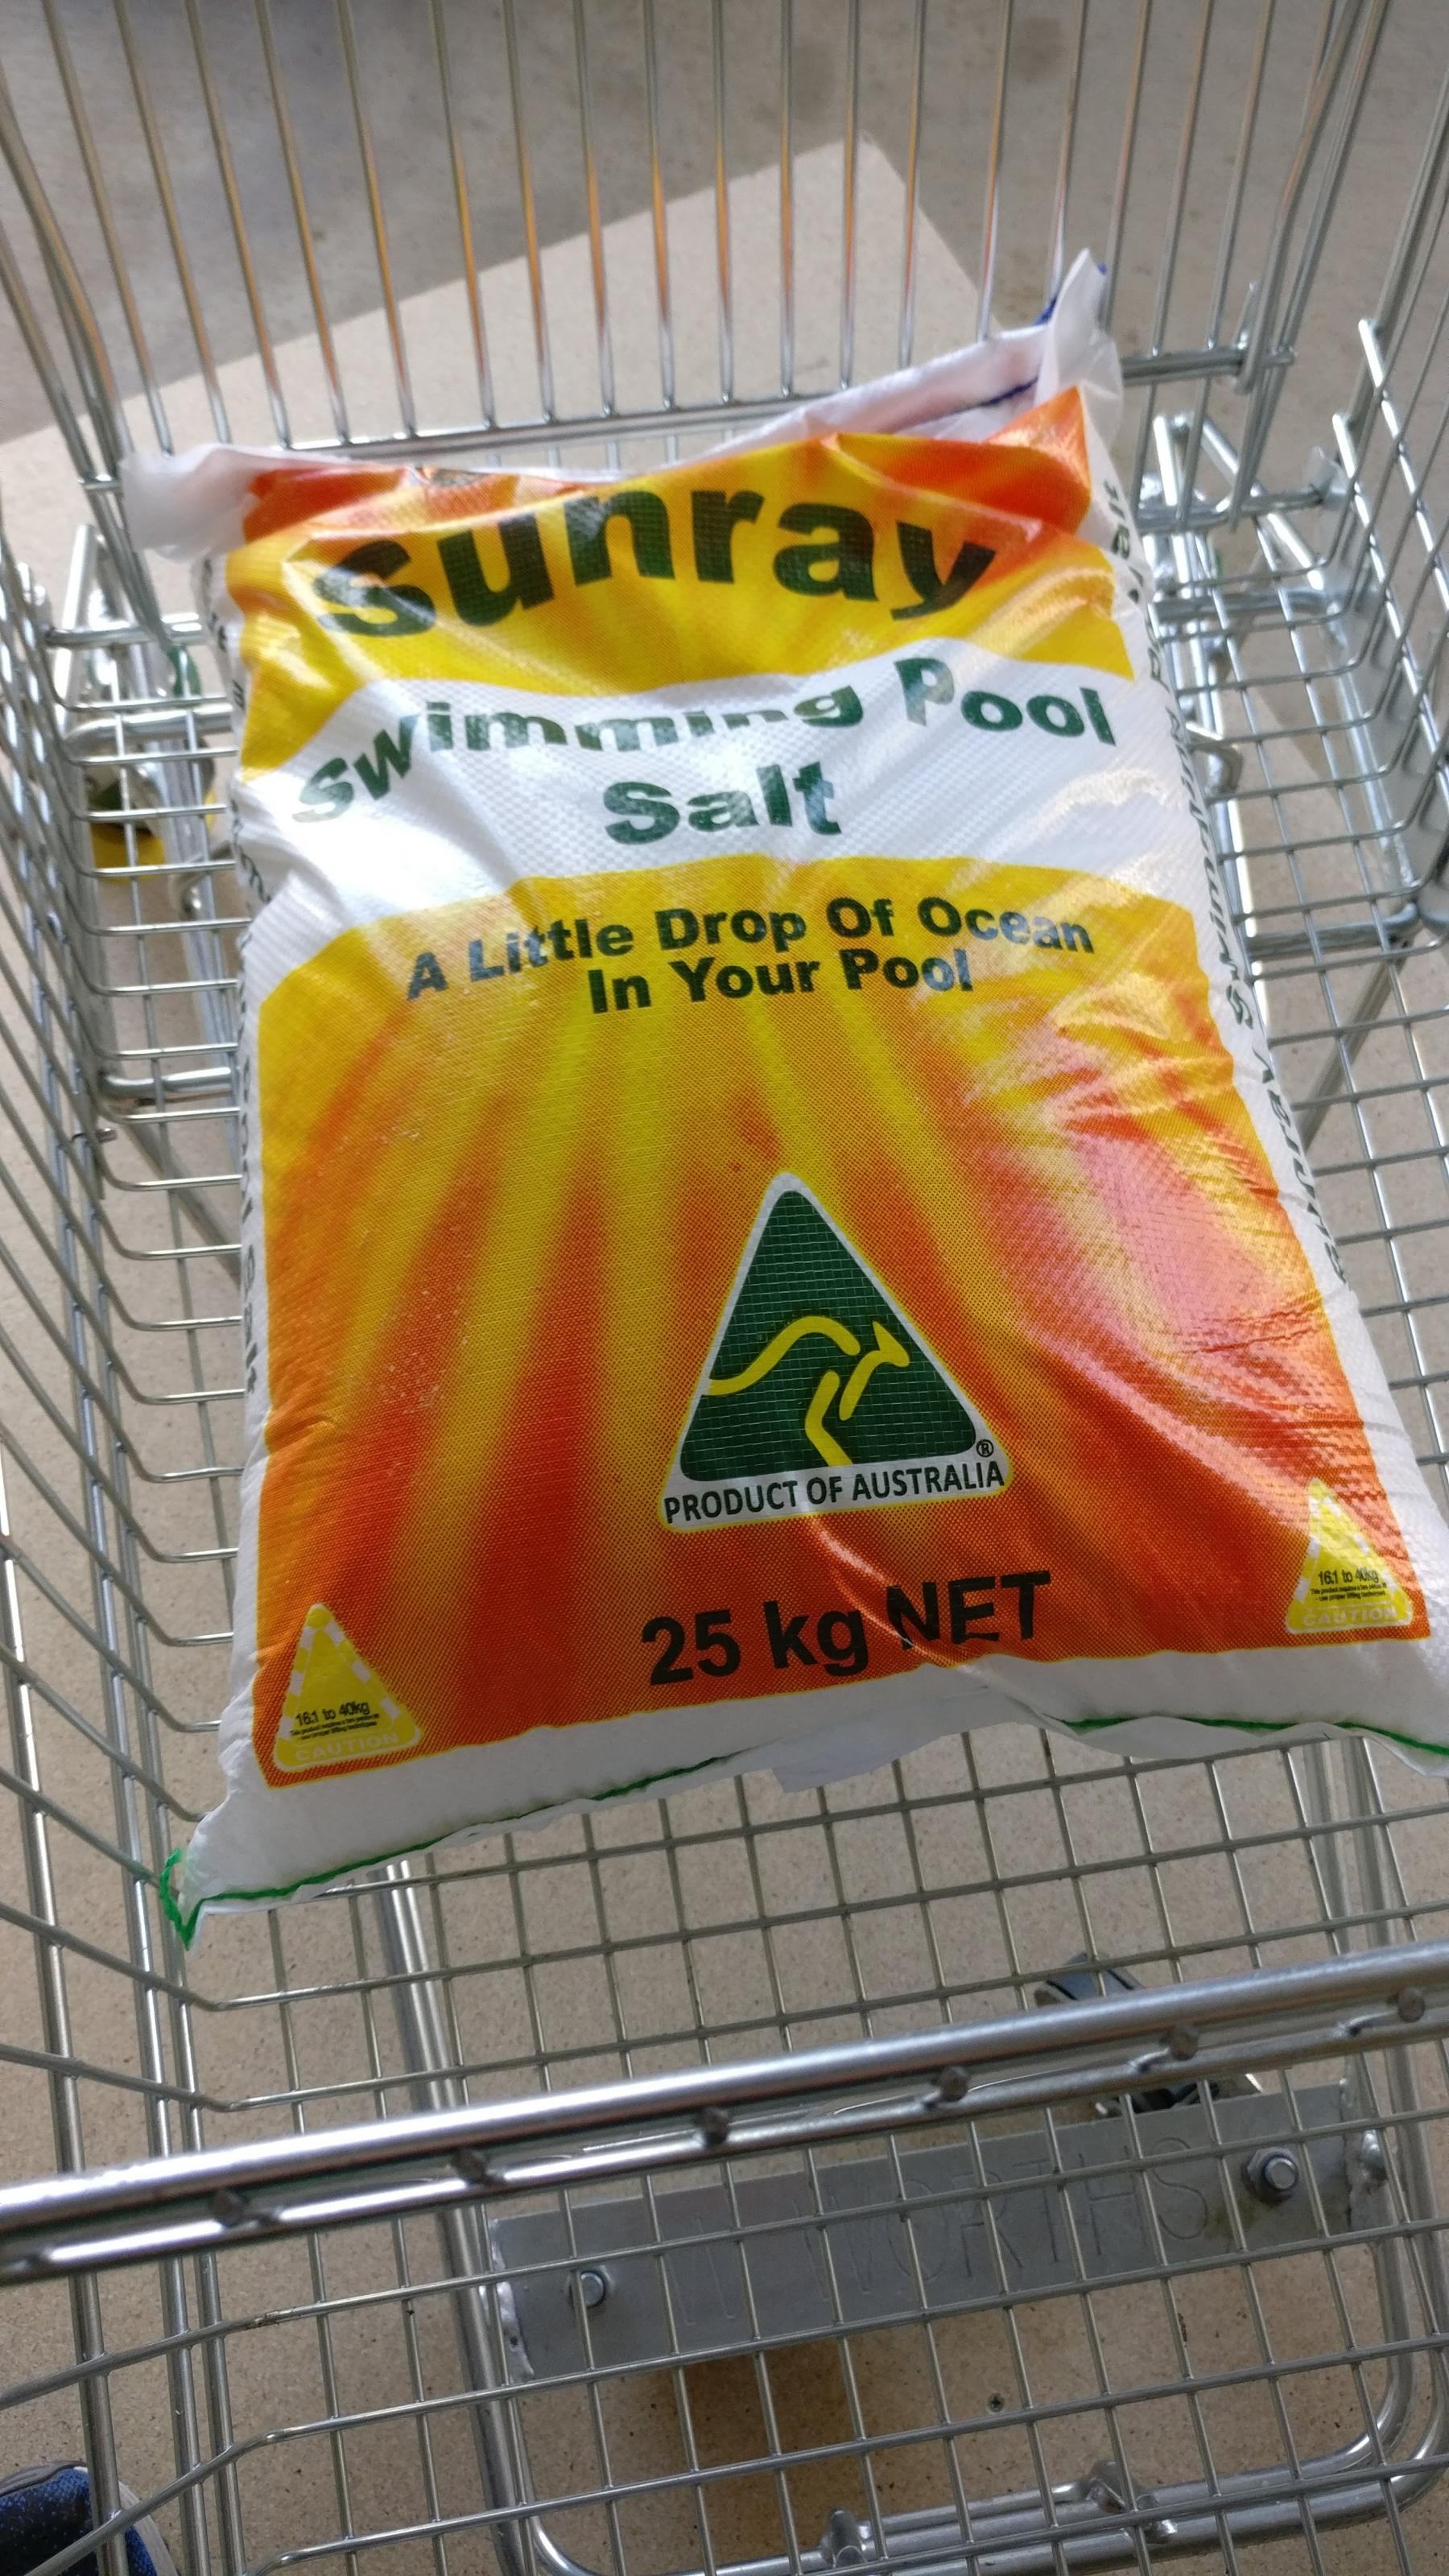 Bag of 25kg pool salt in shopping trolley